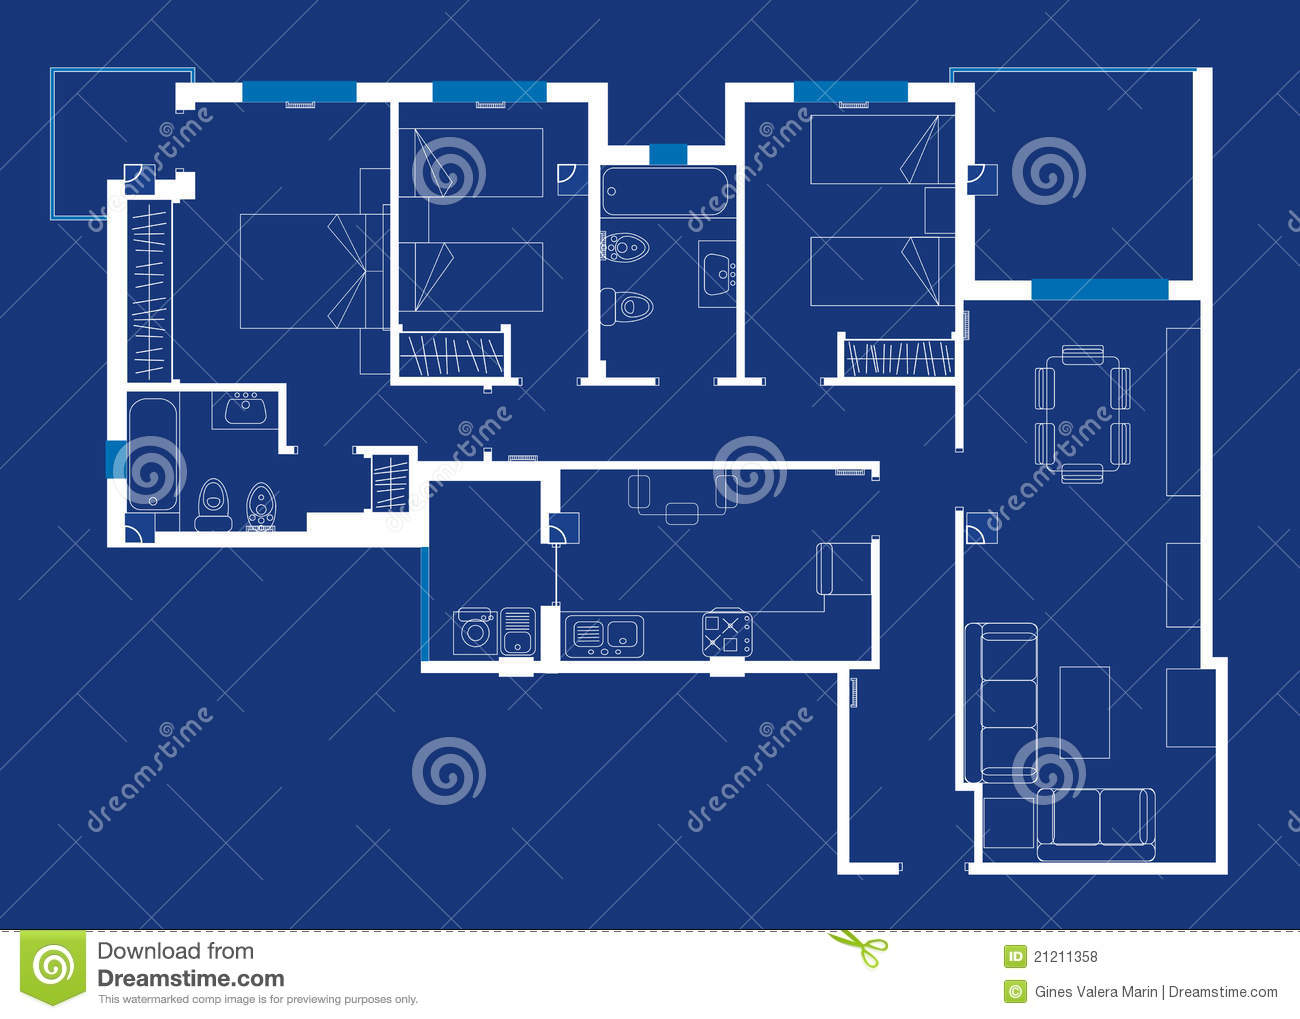 Http Www Dreamstime Com Royalty Free Stock Photos House Blueprint Image21211358